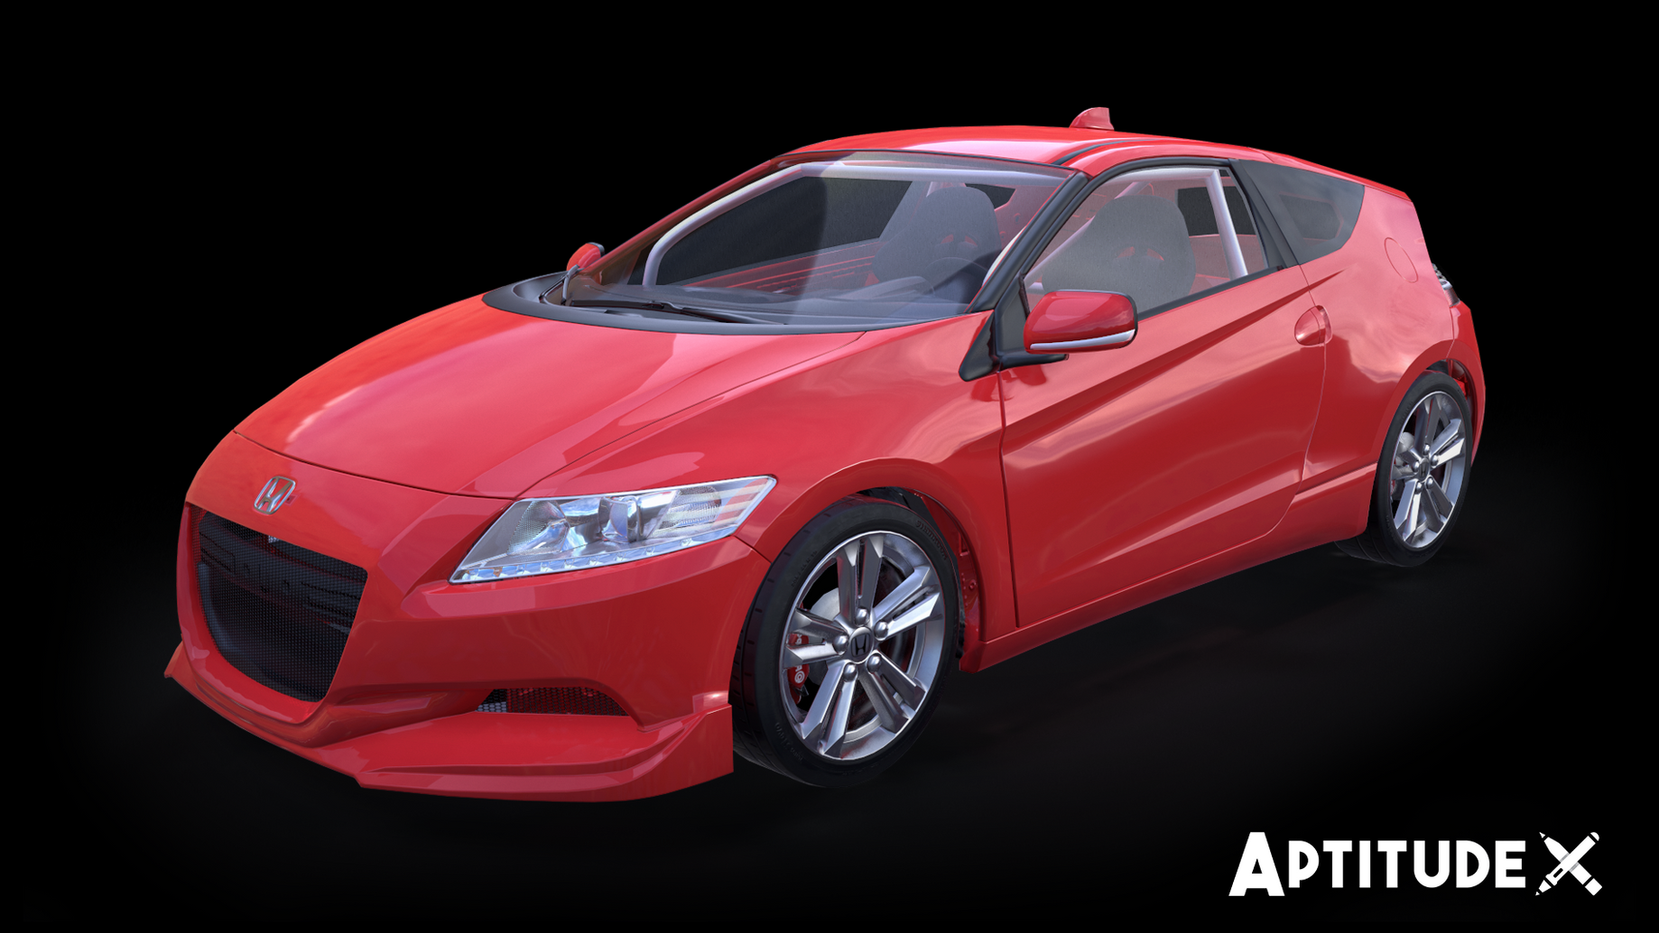 APx_HondaCRZ_Gymkhana_FinalRender.png